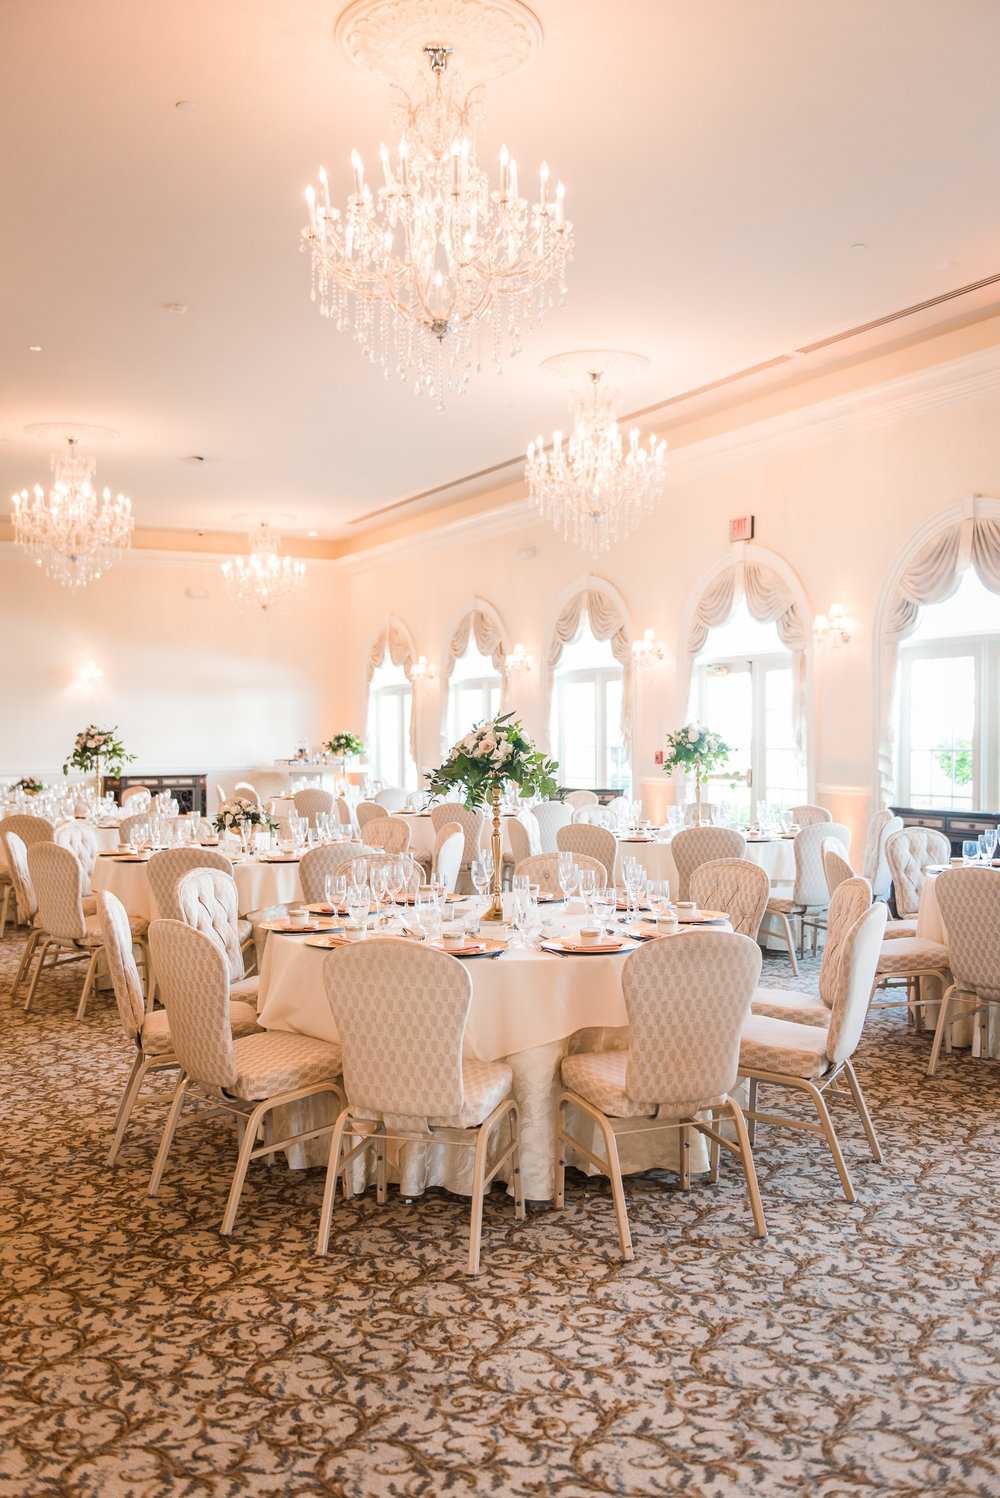 White and Blush wedding at Ashton Gardens Houston